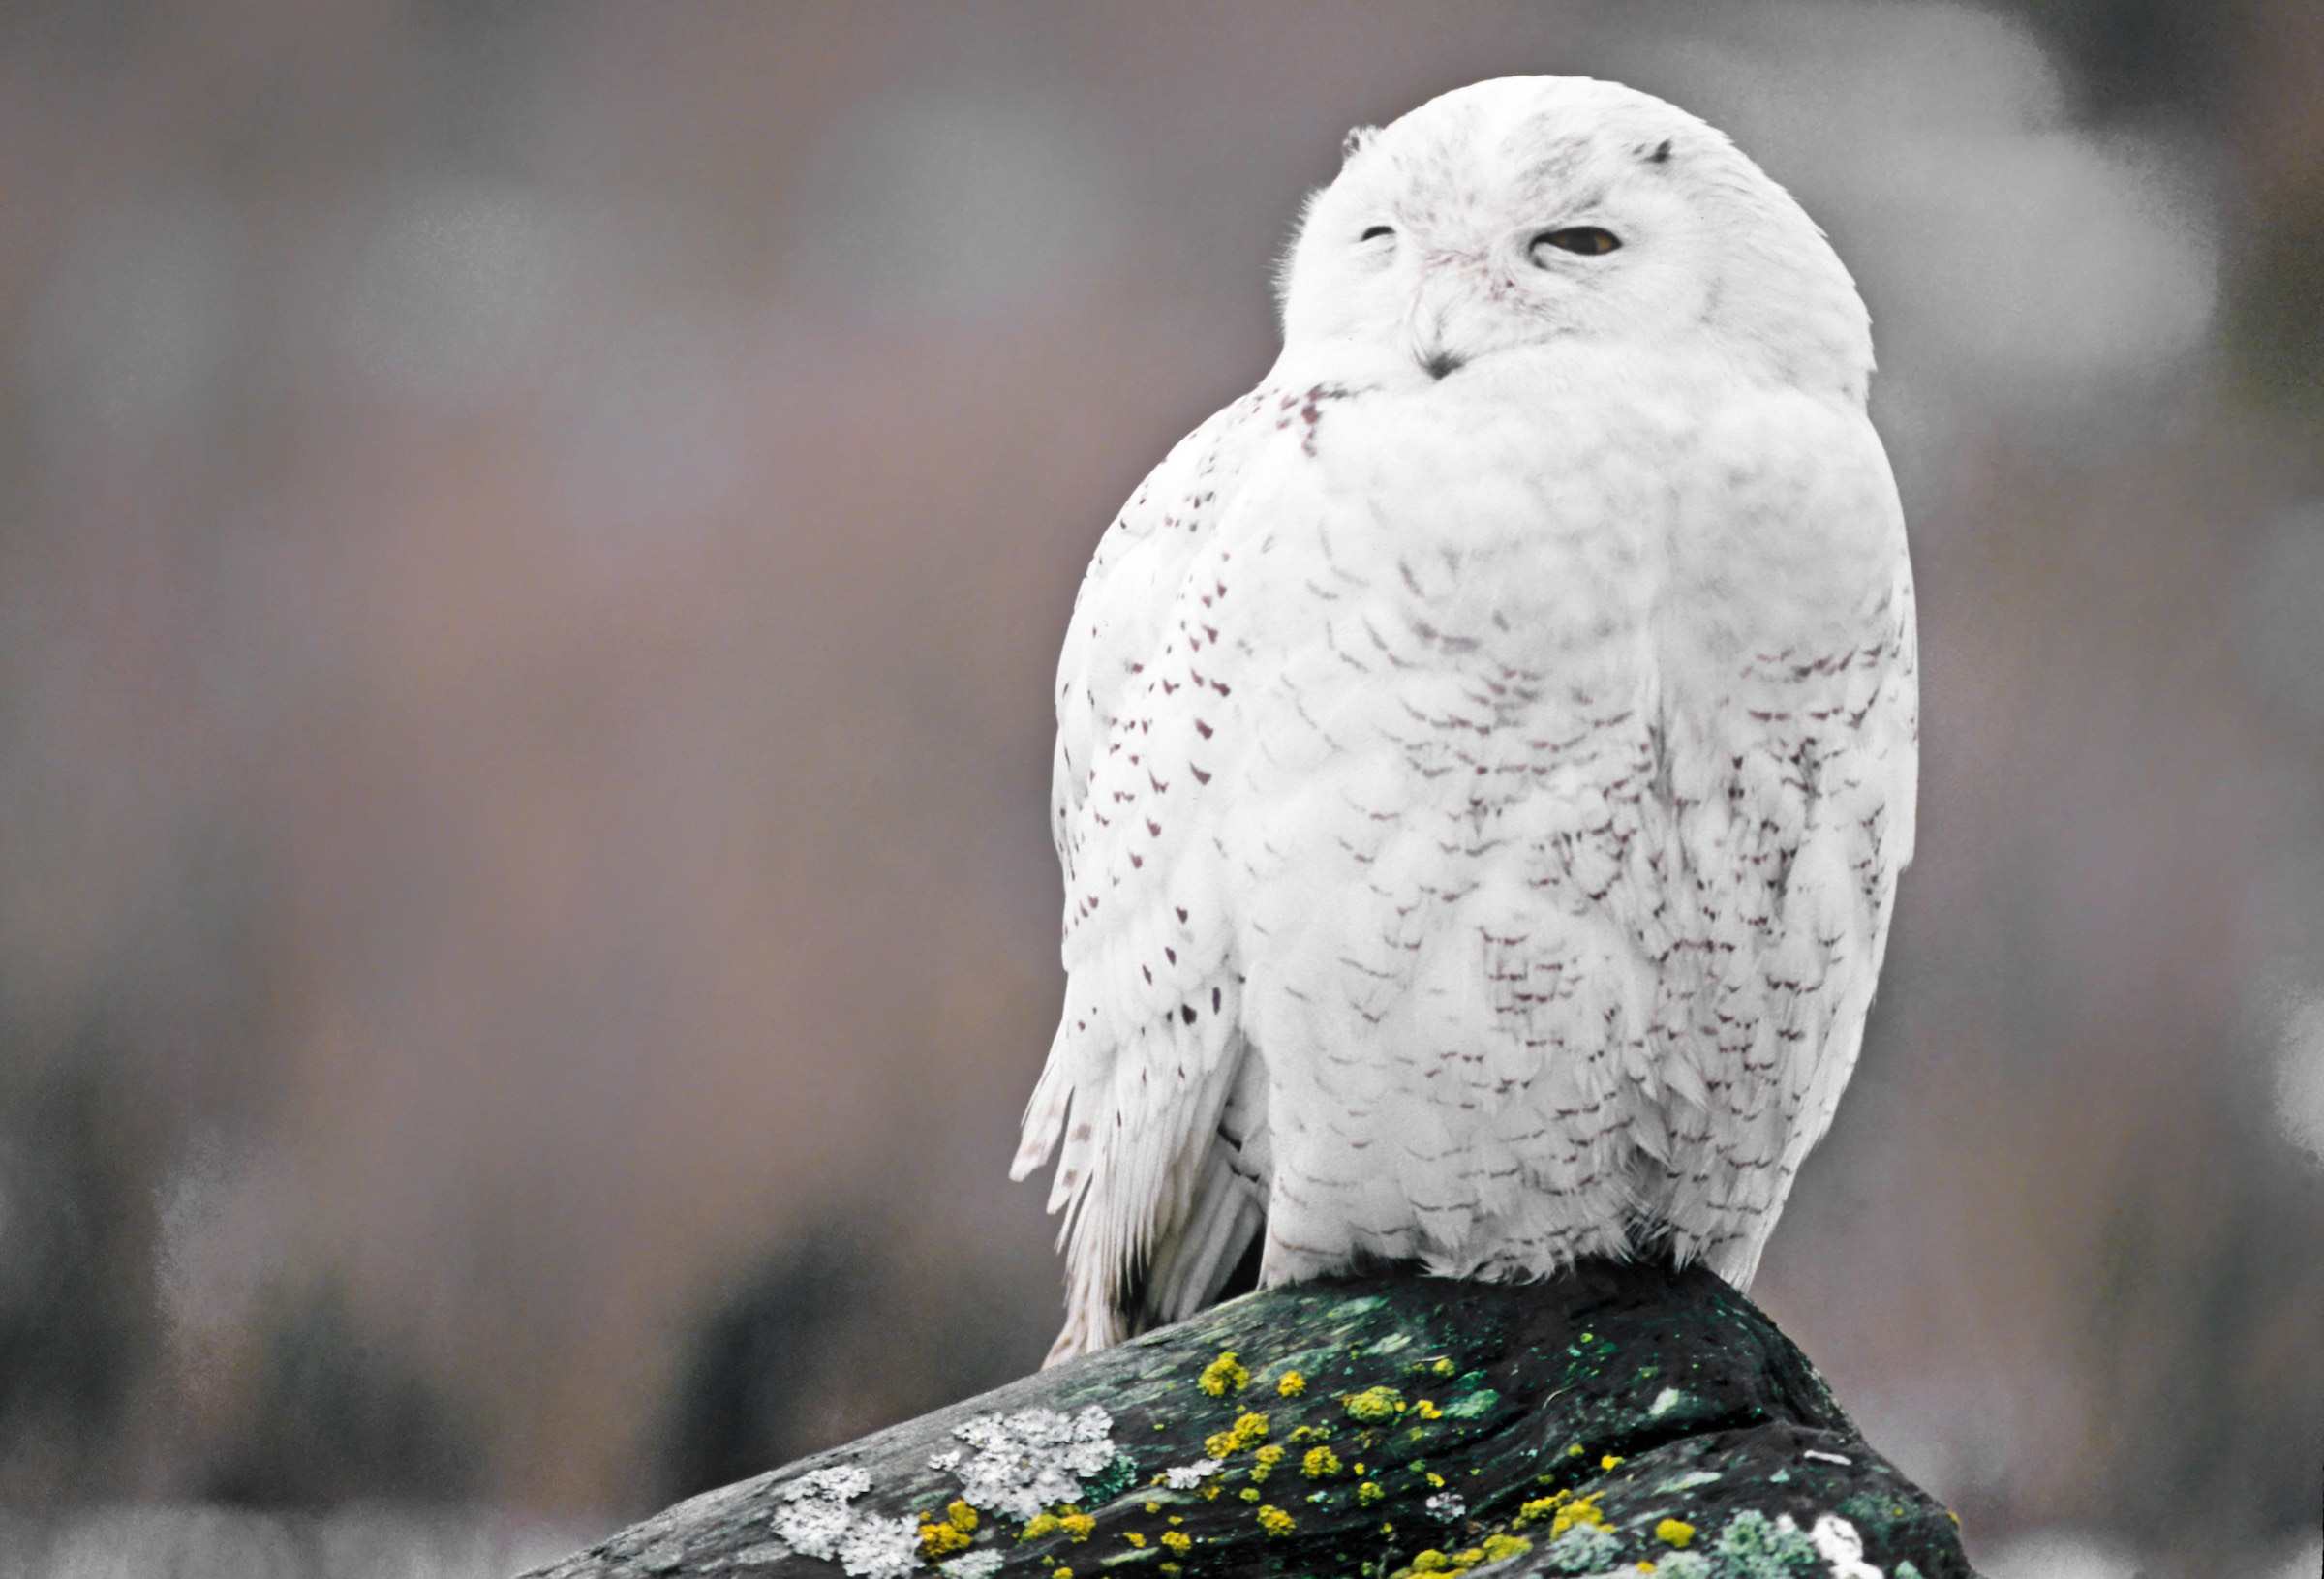 snowy owl. © given photography 2018